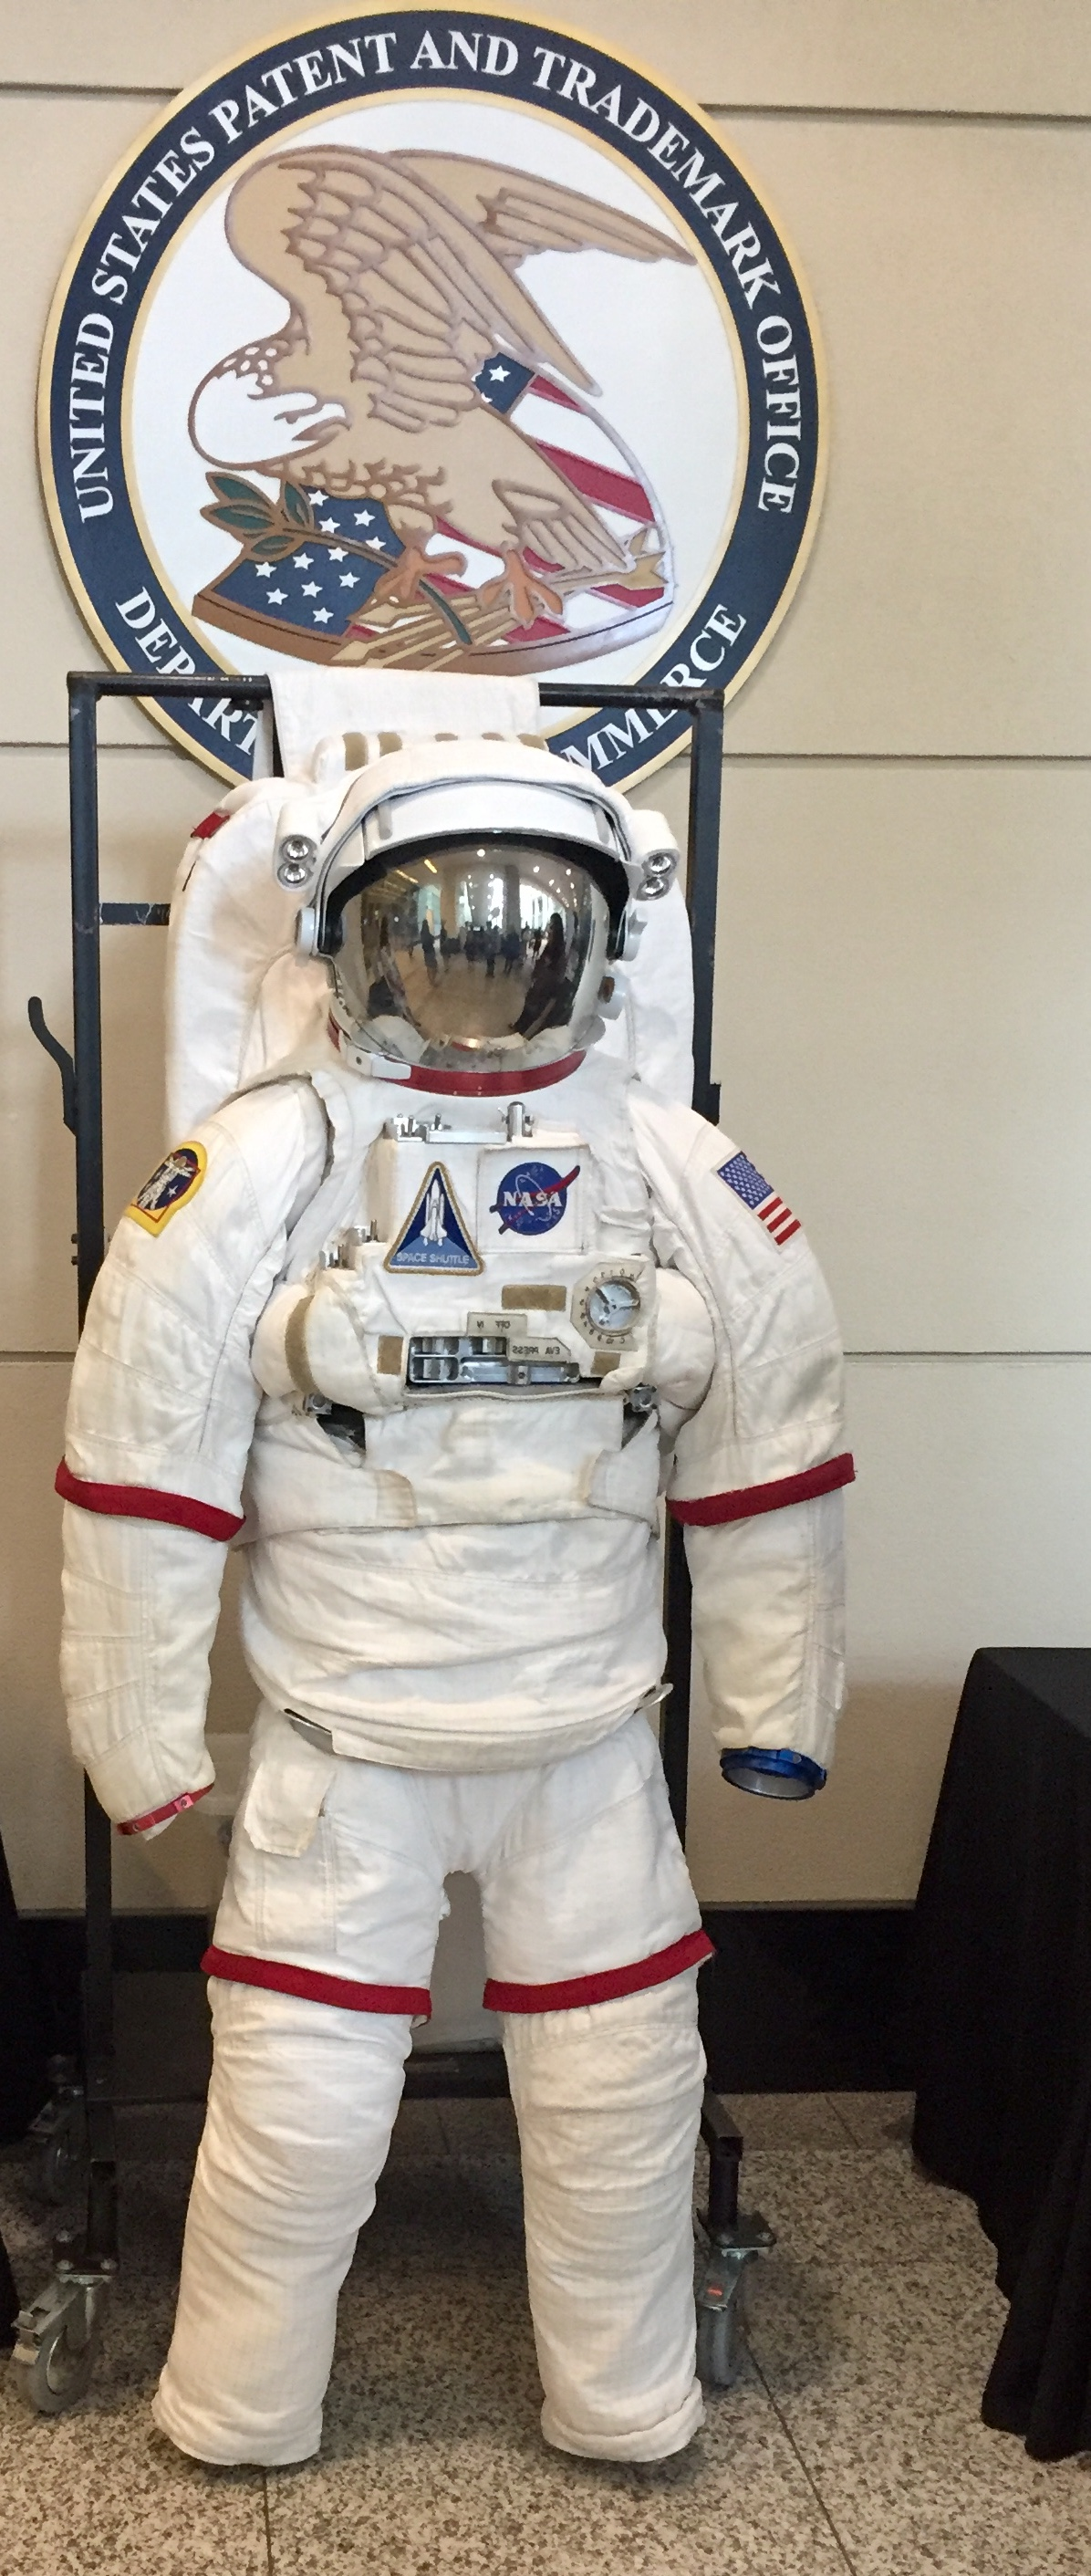 Replica space suit outside the room where the talks were held.